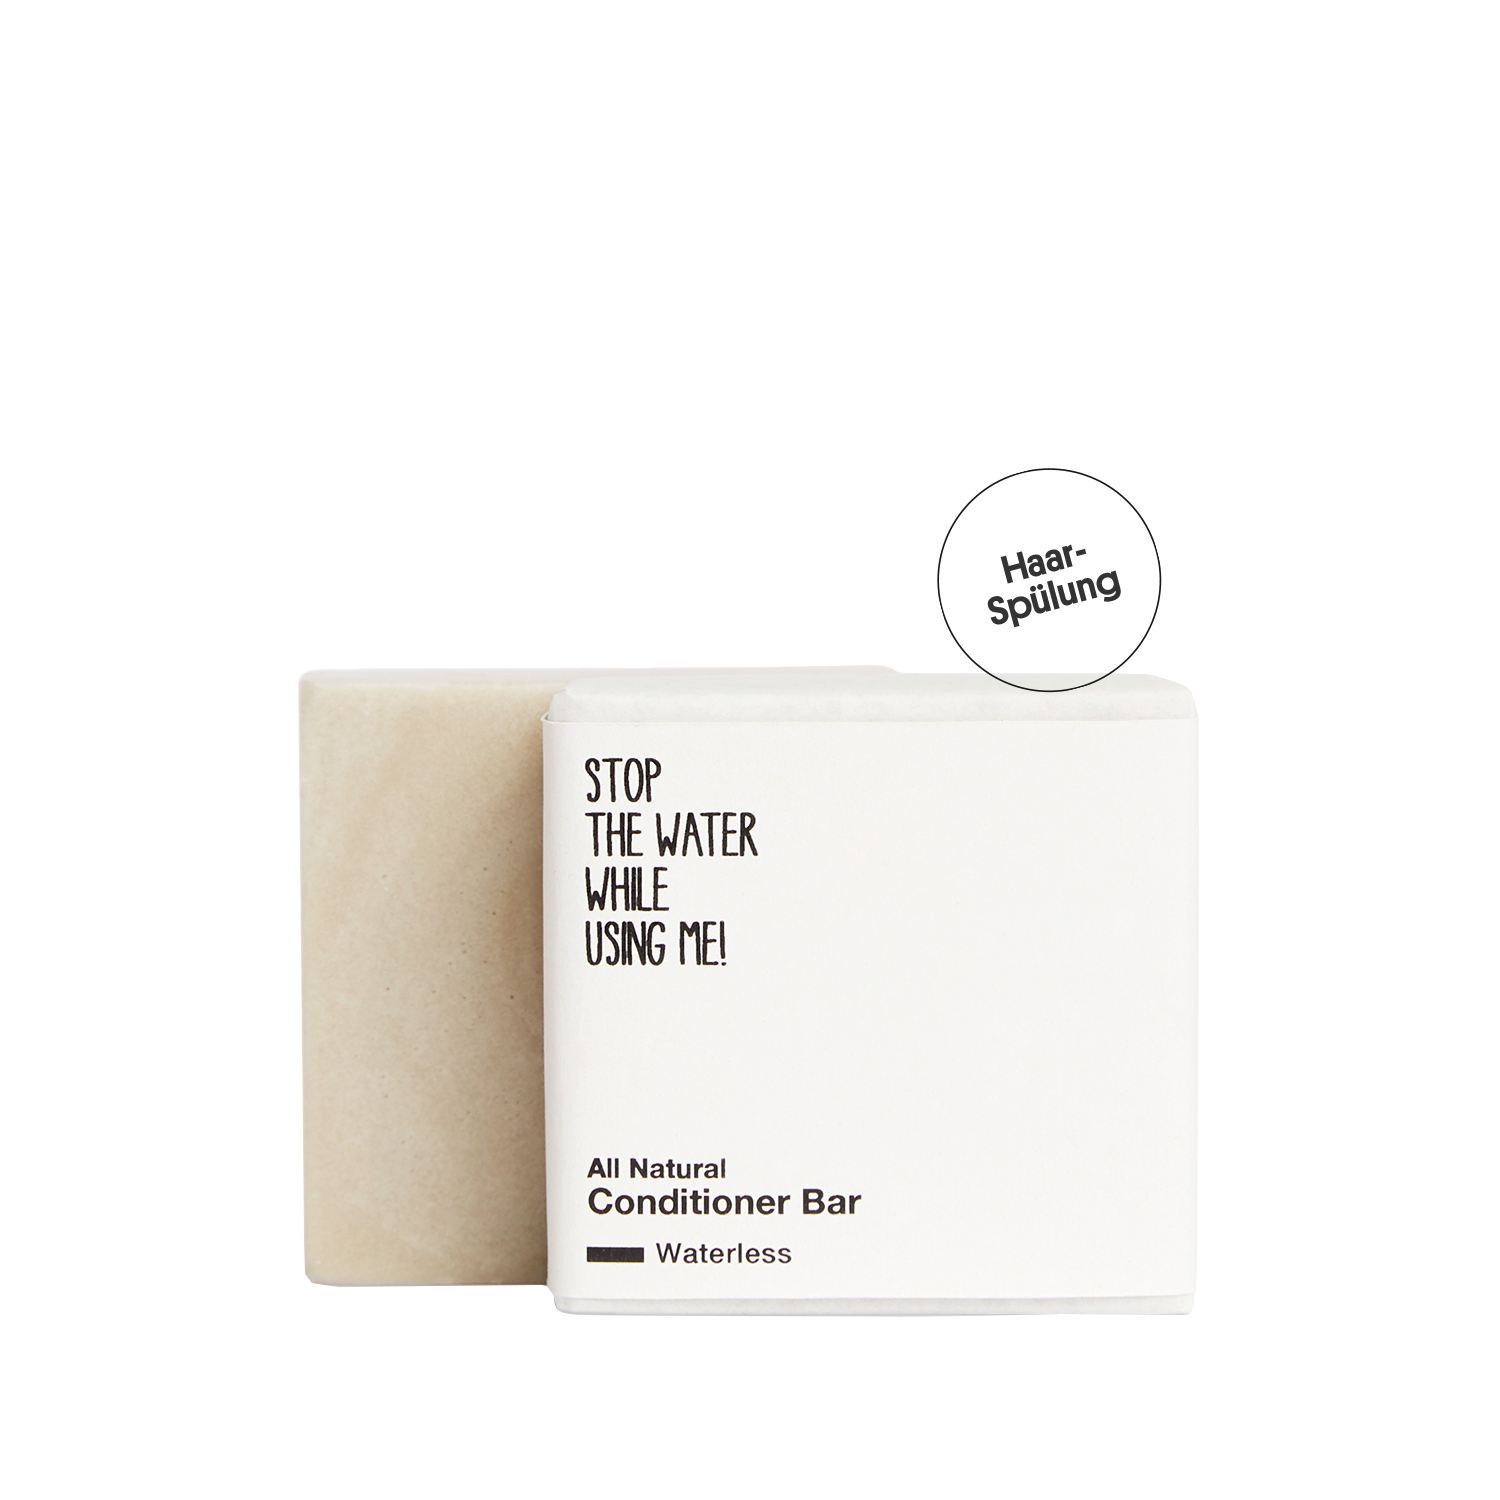 All Natural Conditioner Bar - Waterless Edition, 45 g